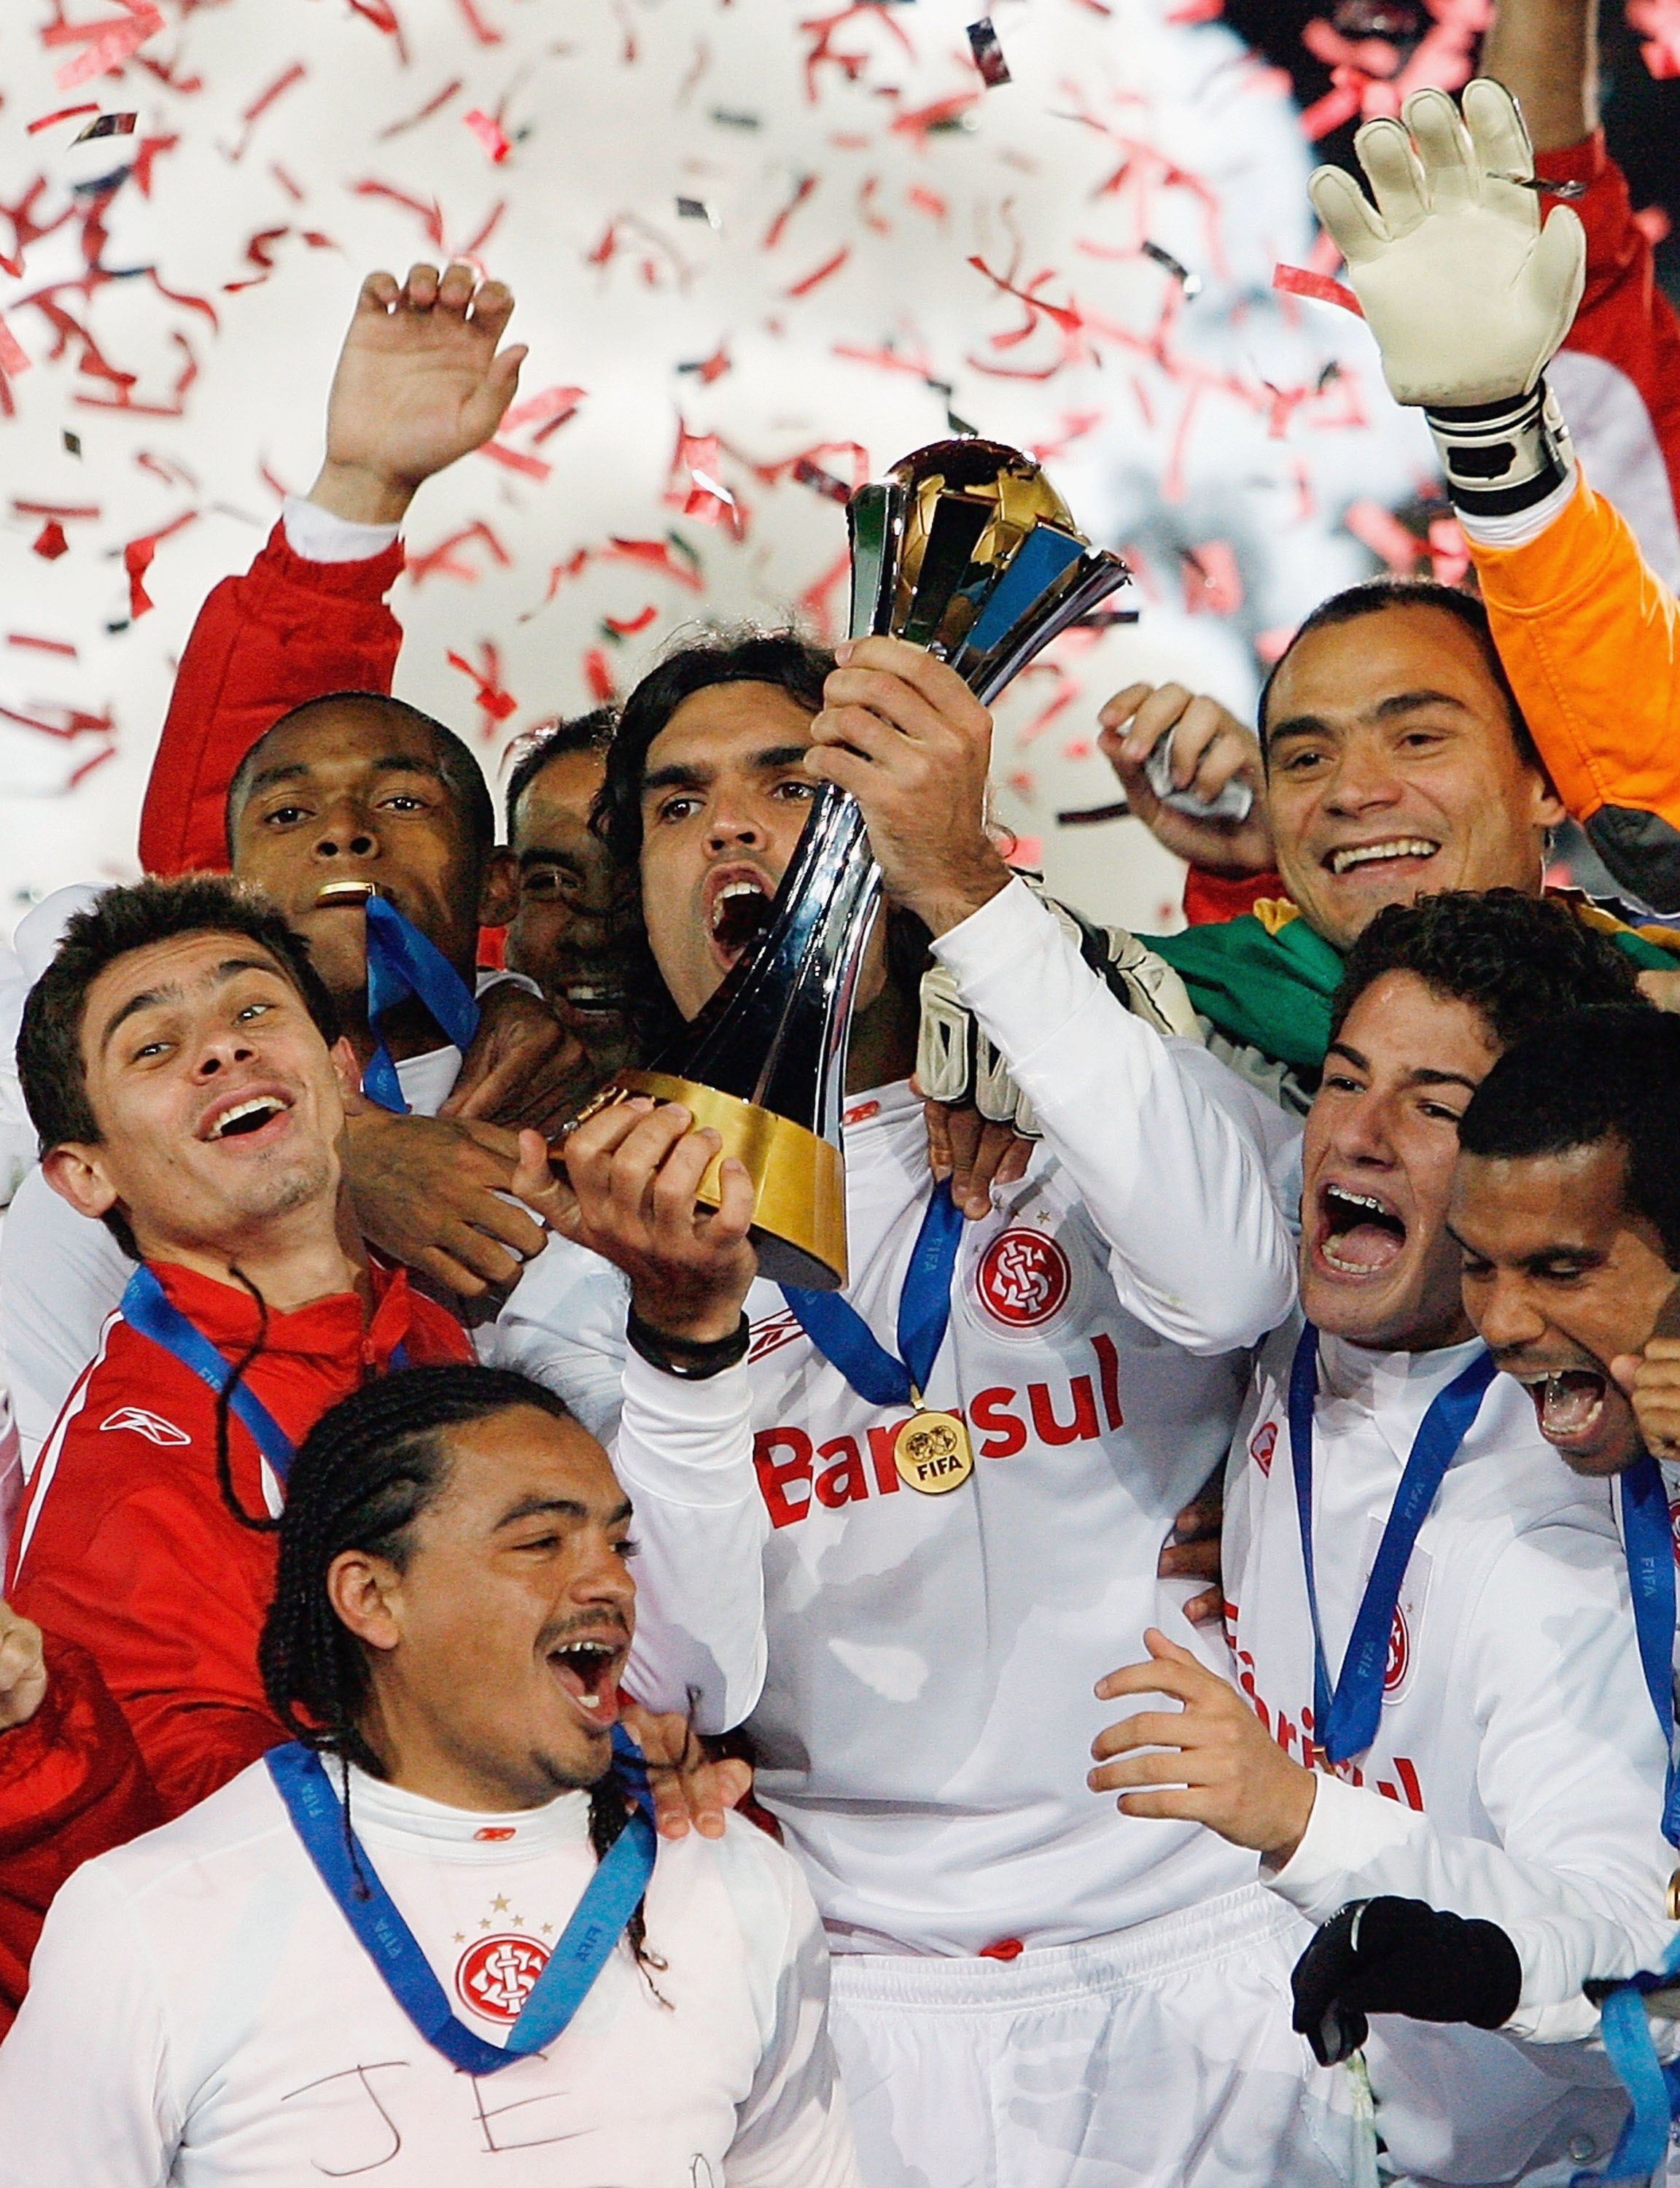 YOKOHAMA, JAPAN - DECEMBER 17:  Sport Club Internaciona players celebrate with the cup after winning the final of the FIFA Club World Cup Japan 2006 between Sport Club Internacional and FC Barcelona at the International Stadium Yokohama on December 17, 20